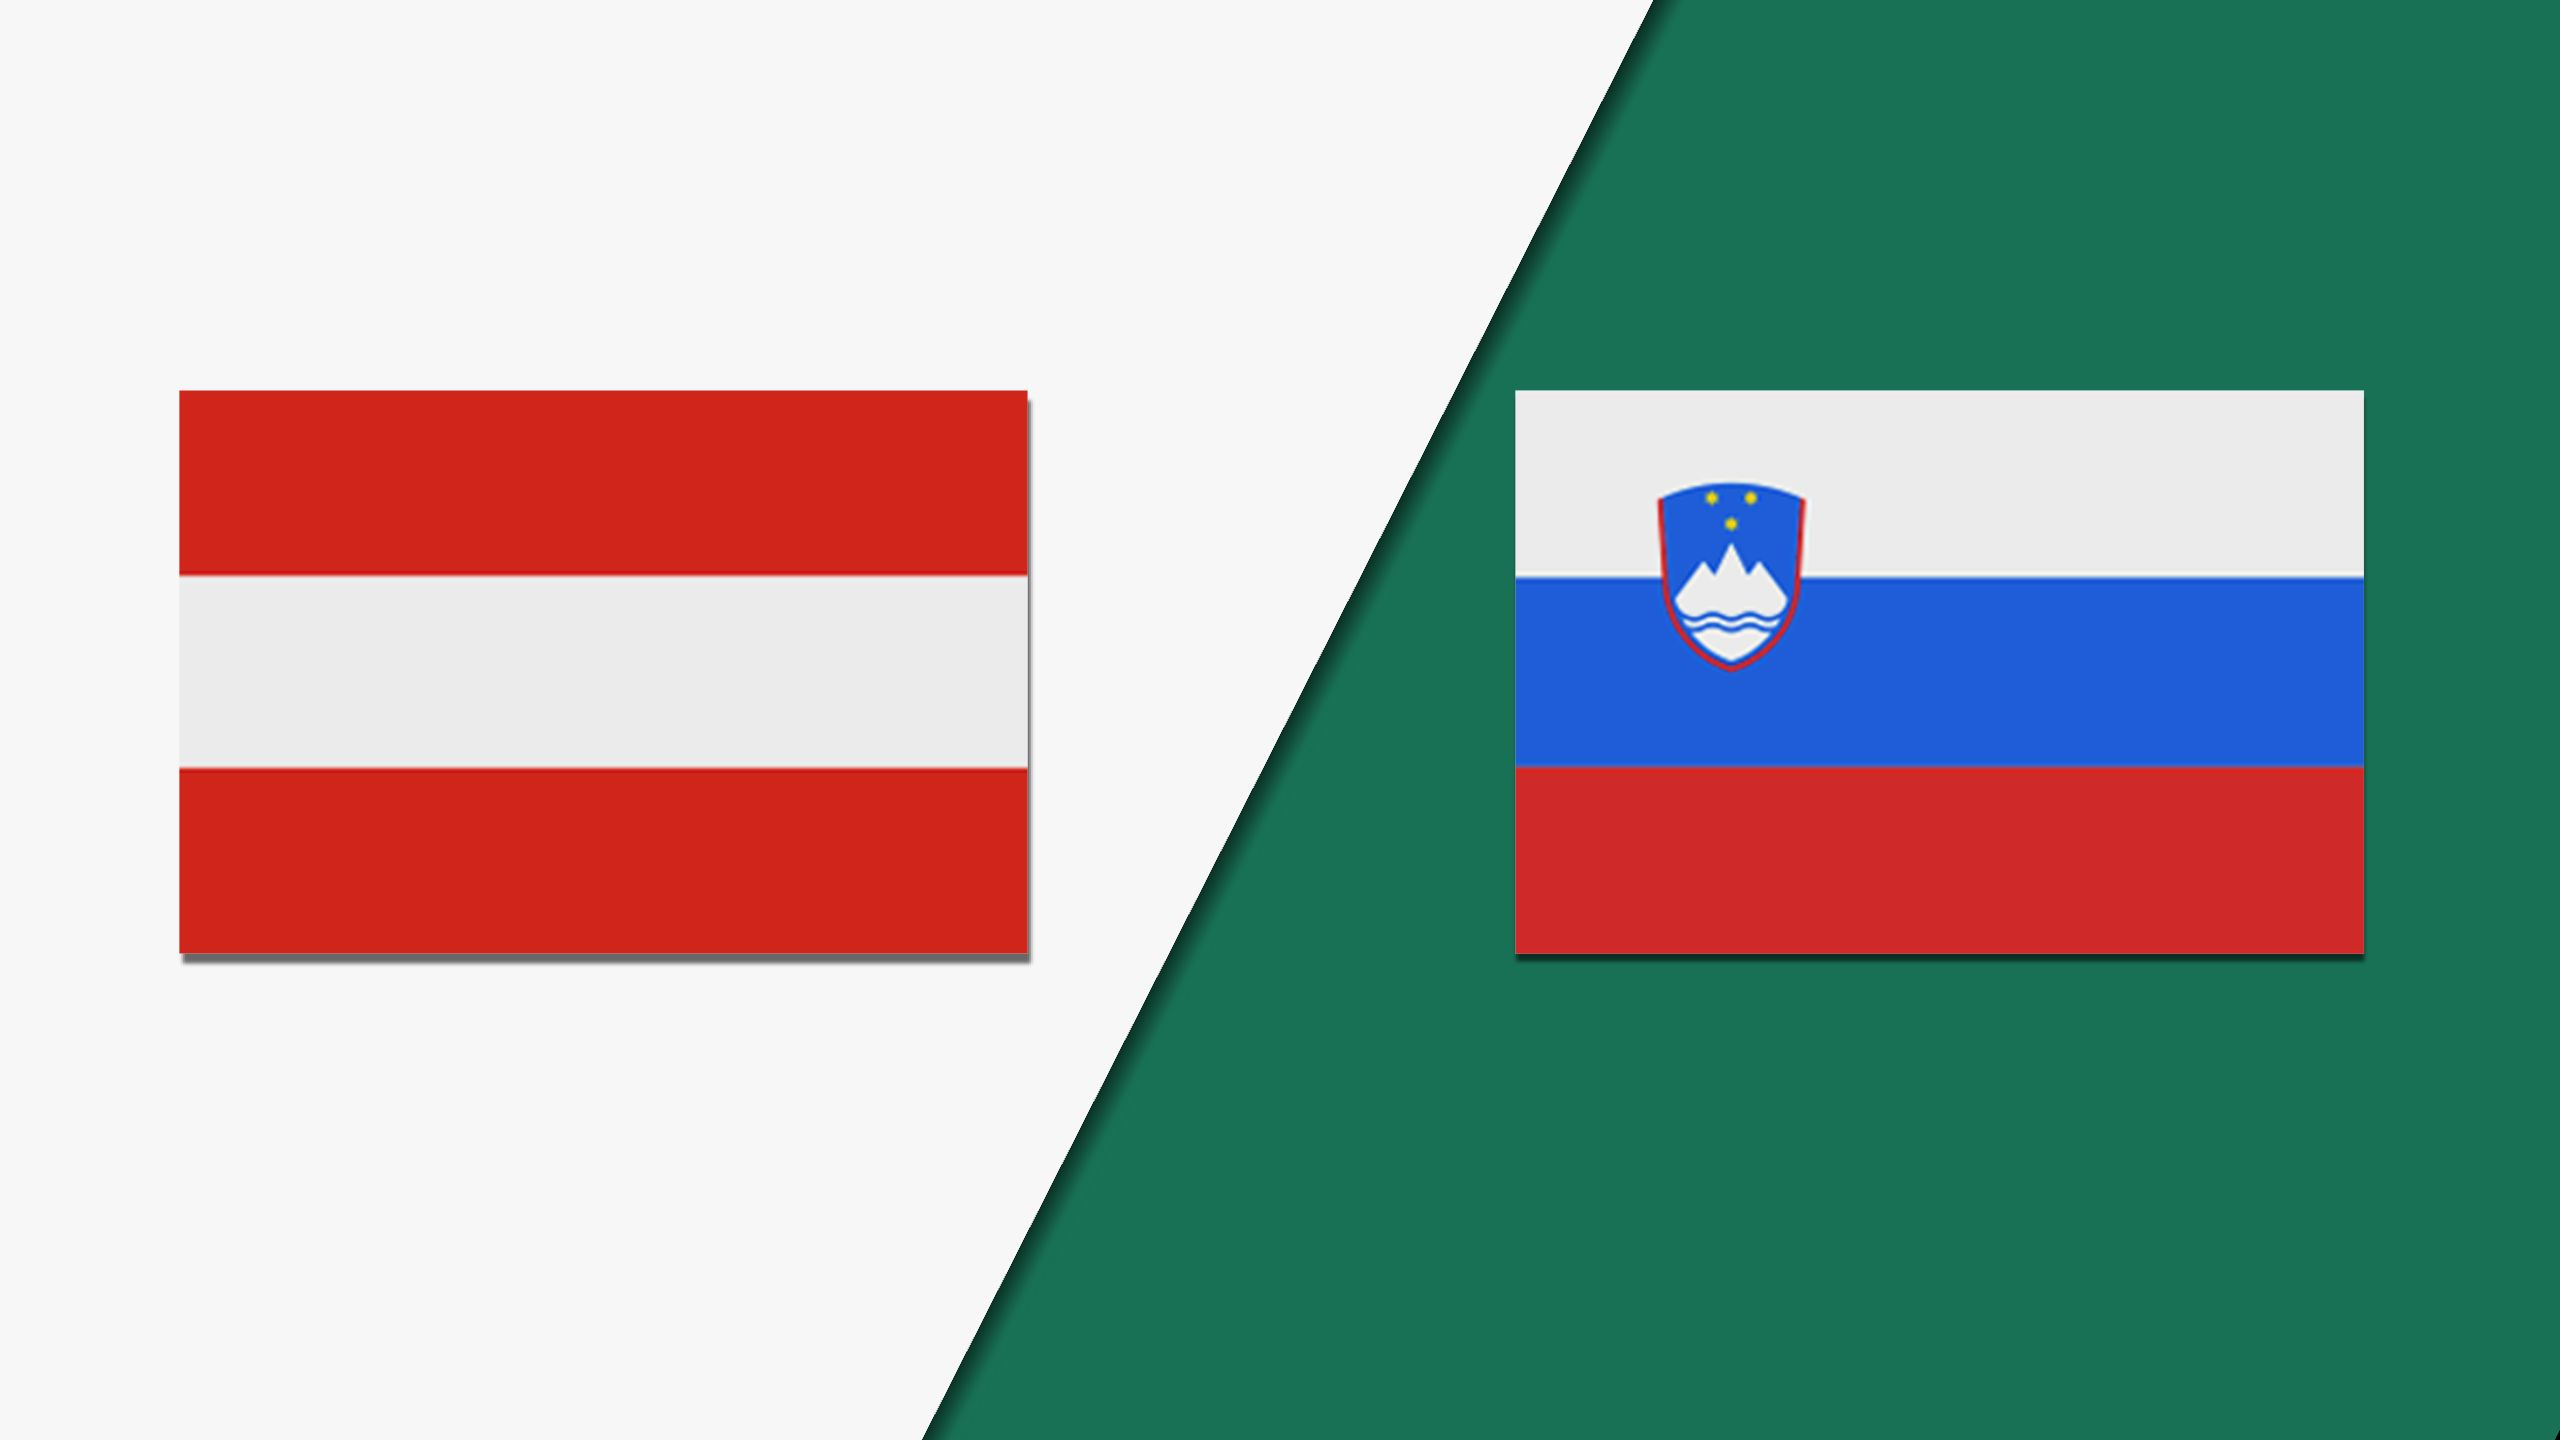 In Spanish - Austria vs. Slovenia (International Friendly)